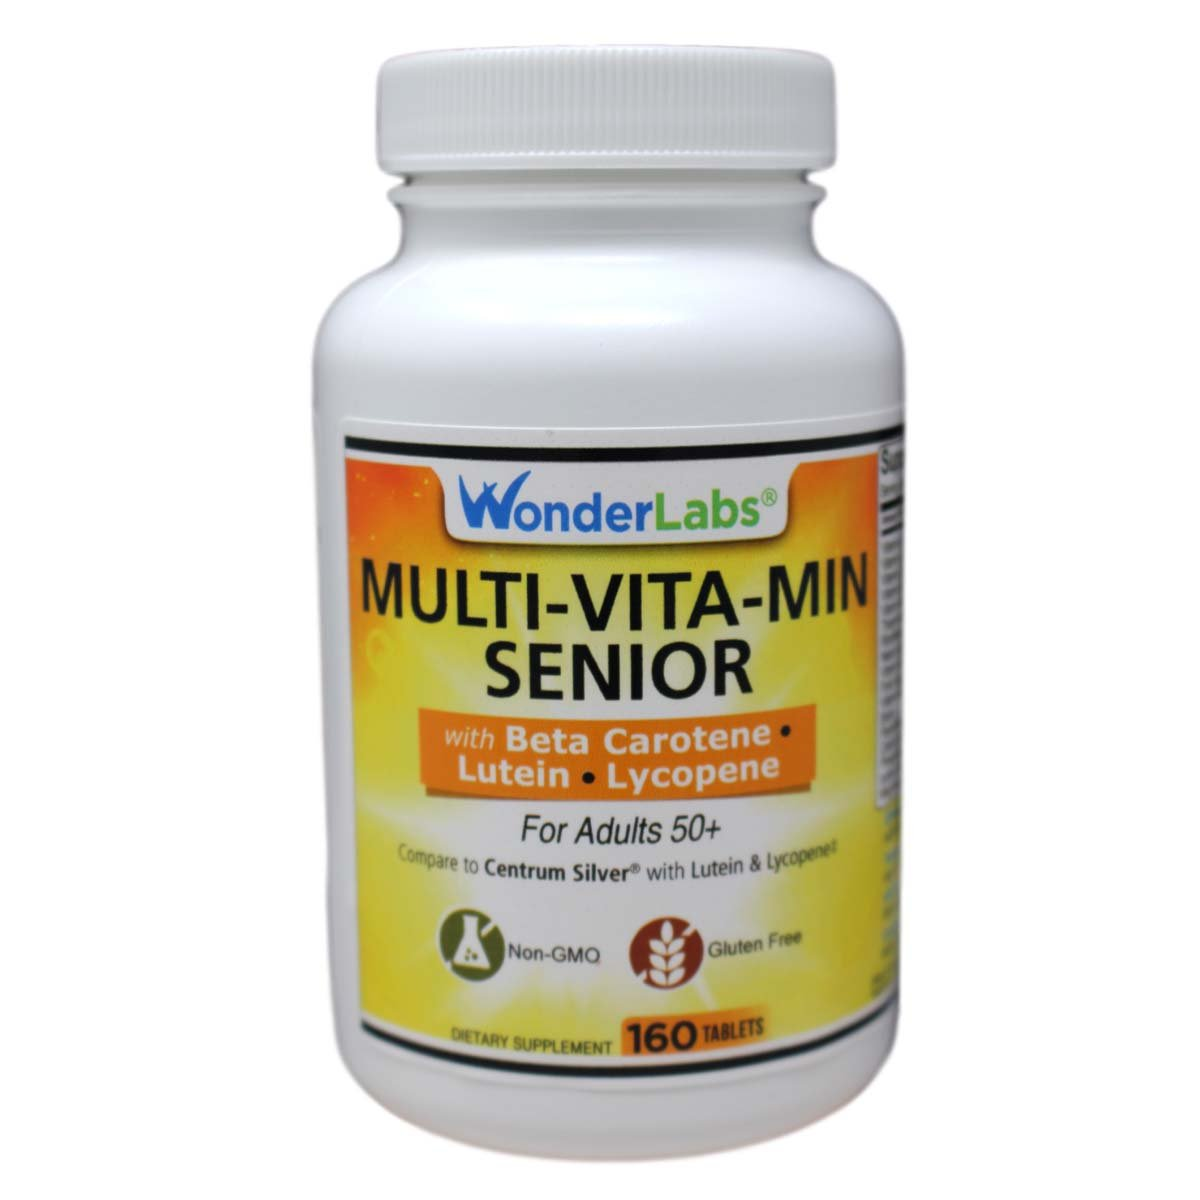 Multi-vitamin Multi-mineral Compare to Centrum Silver® Multivitamin Multimineral with Beta Carotene Especially for Adults 50 Plus - 160 Tablets #2912